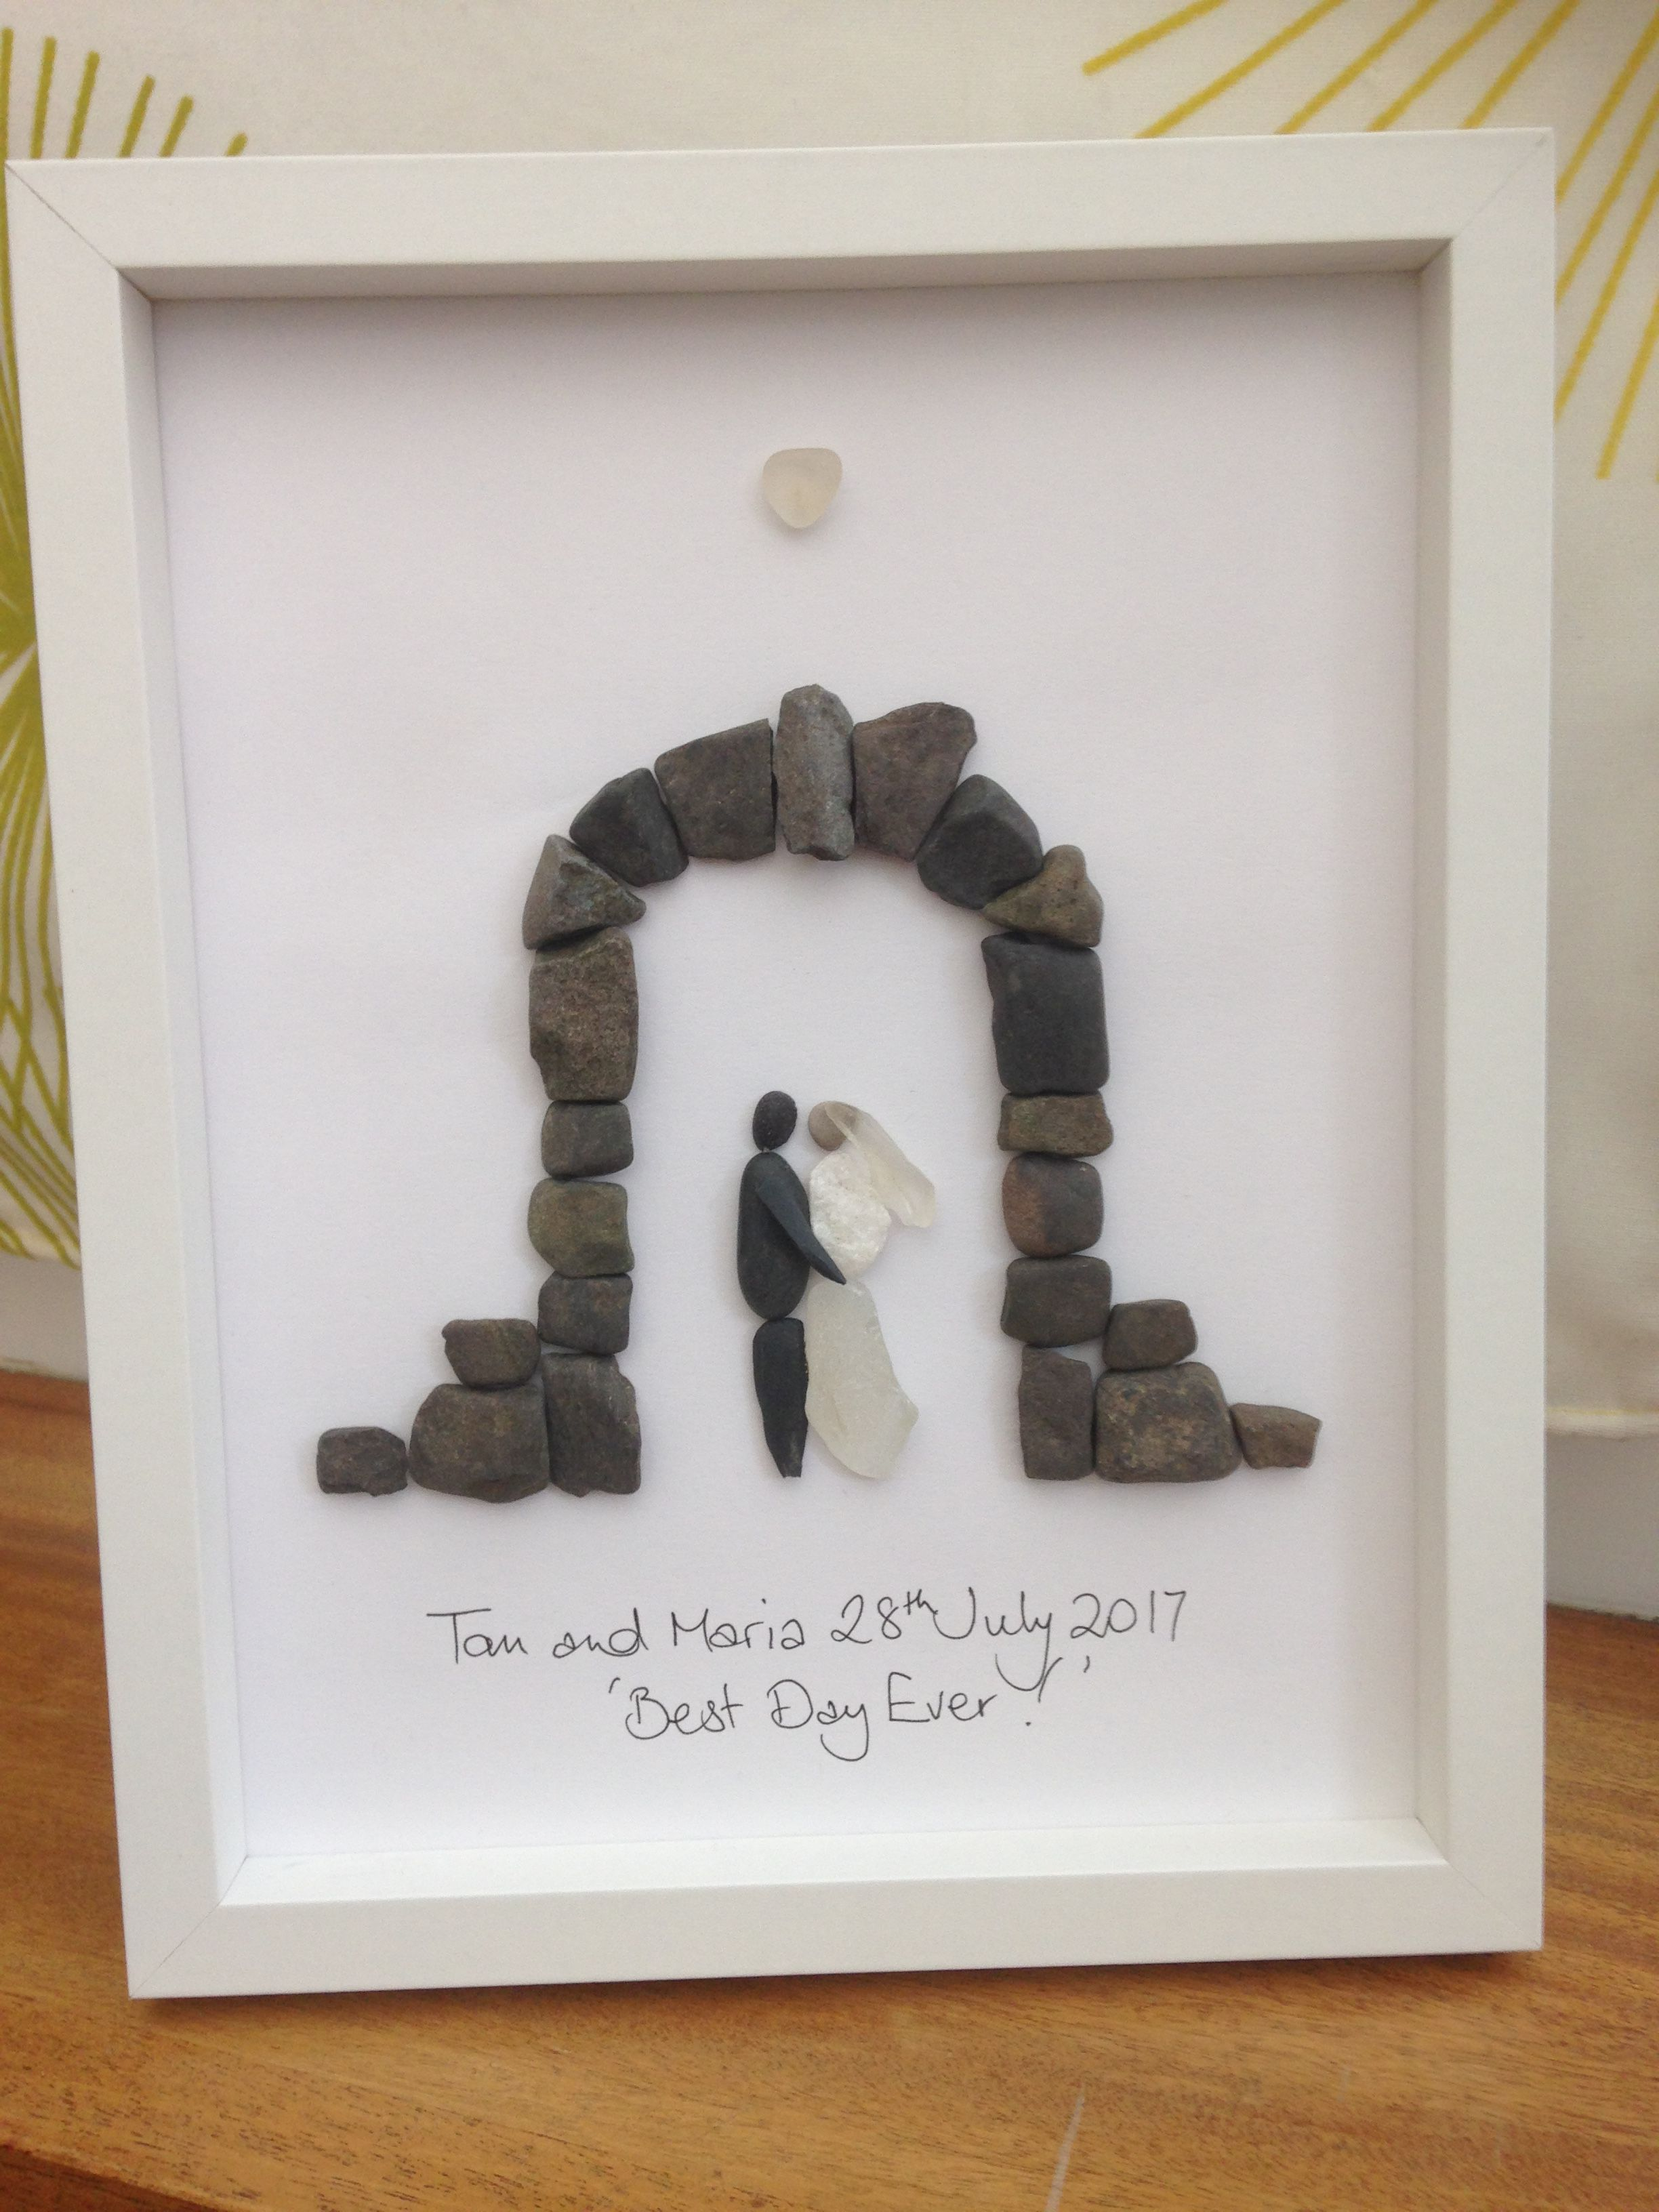 Wedding gift with stones in a frame | Signs | Pinterest ...